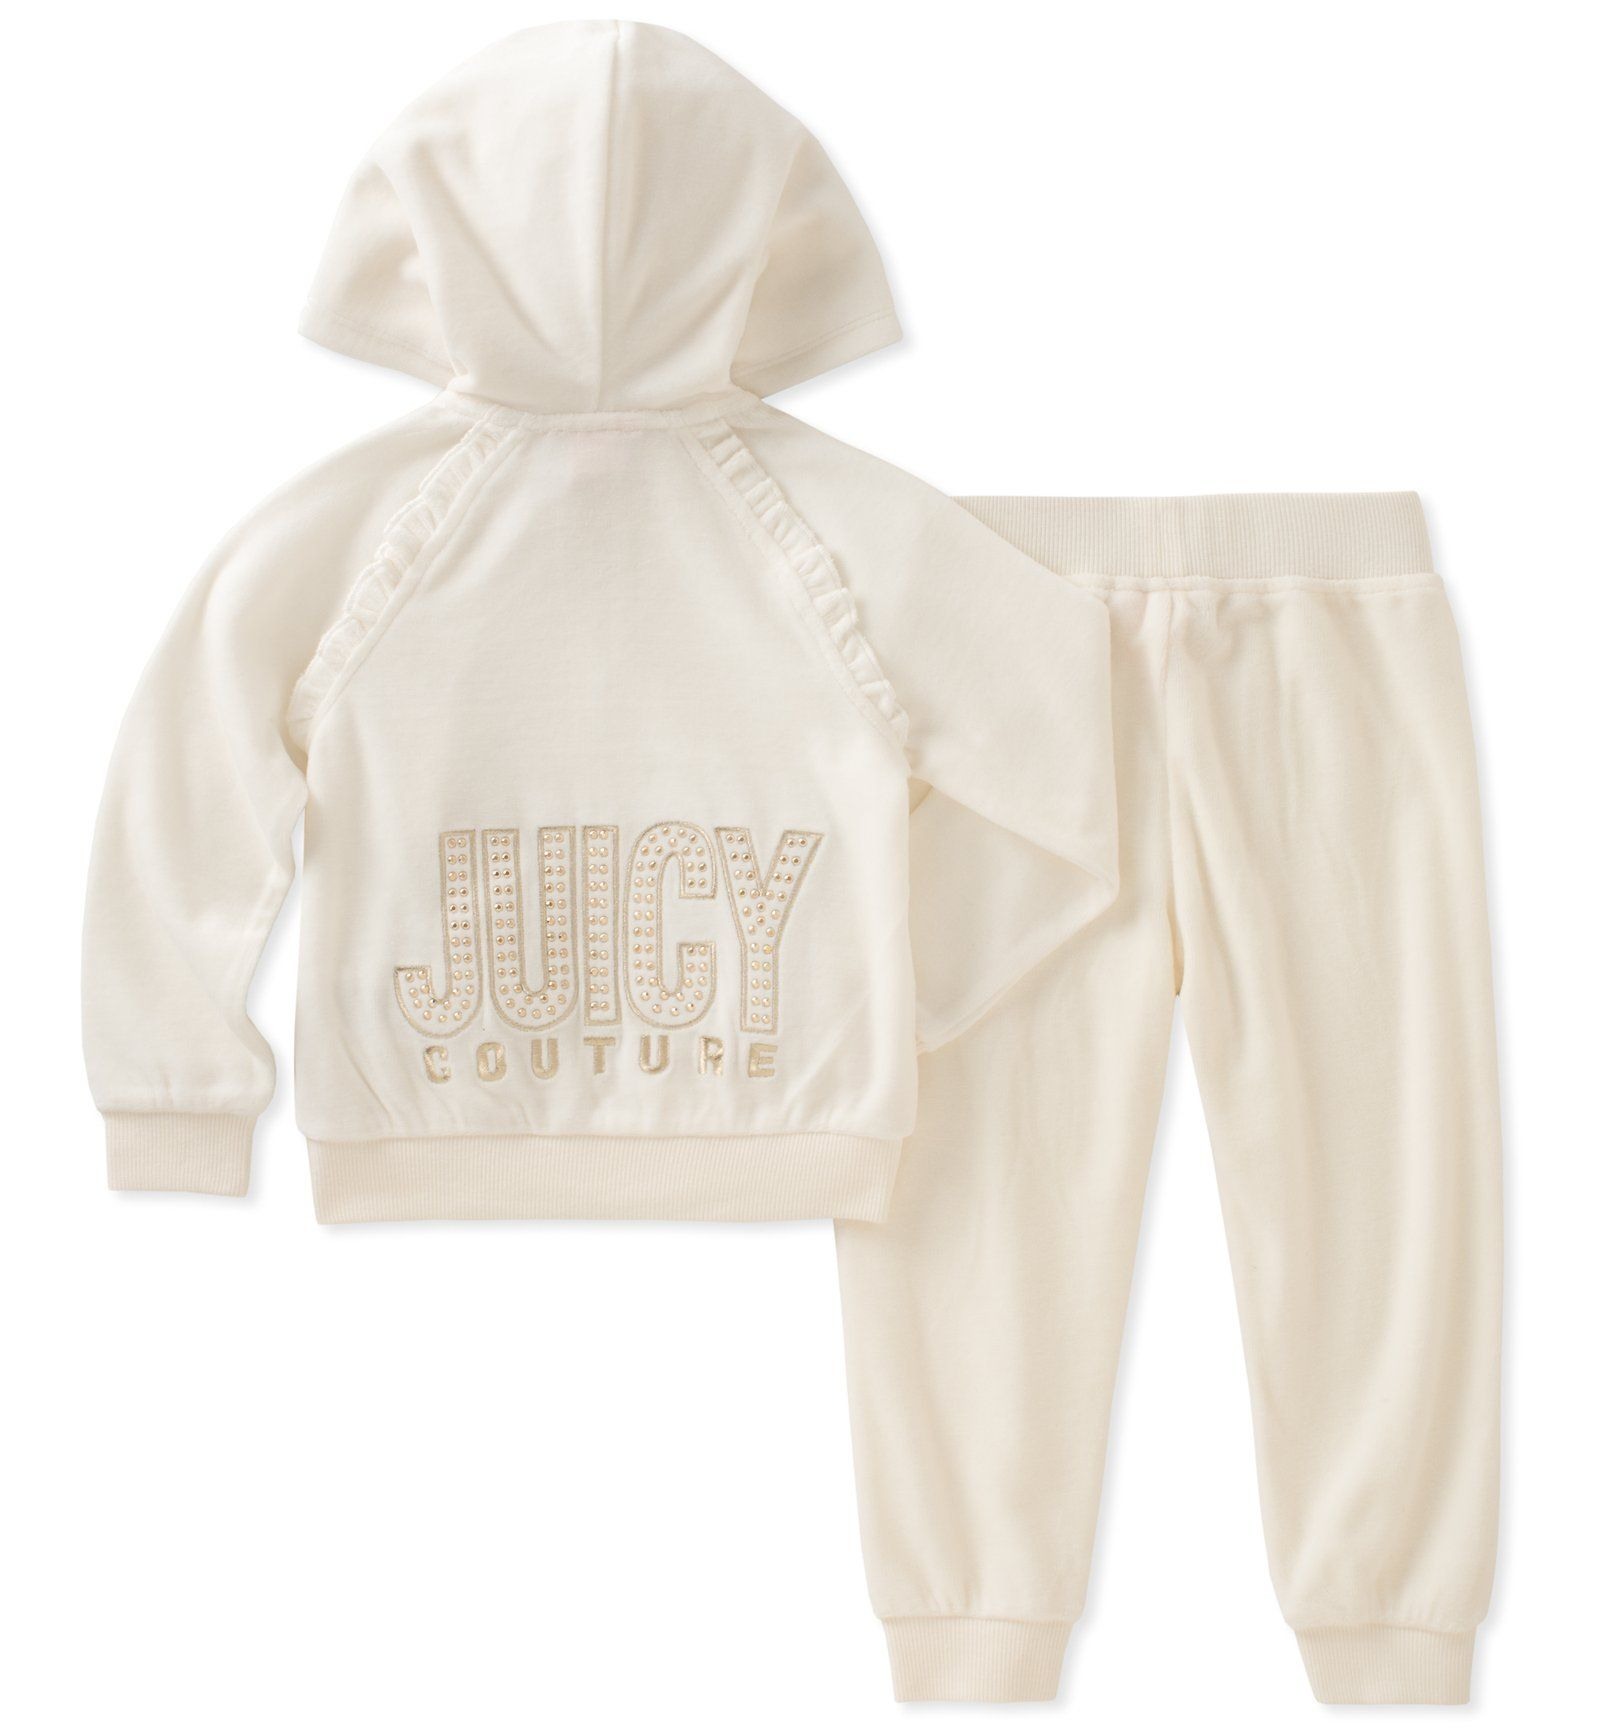 66d148cd2b73 Juicy Couture Infant 2-Piece Track Suit  baby  girl  tracksuit ...